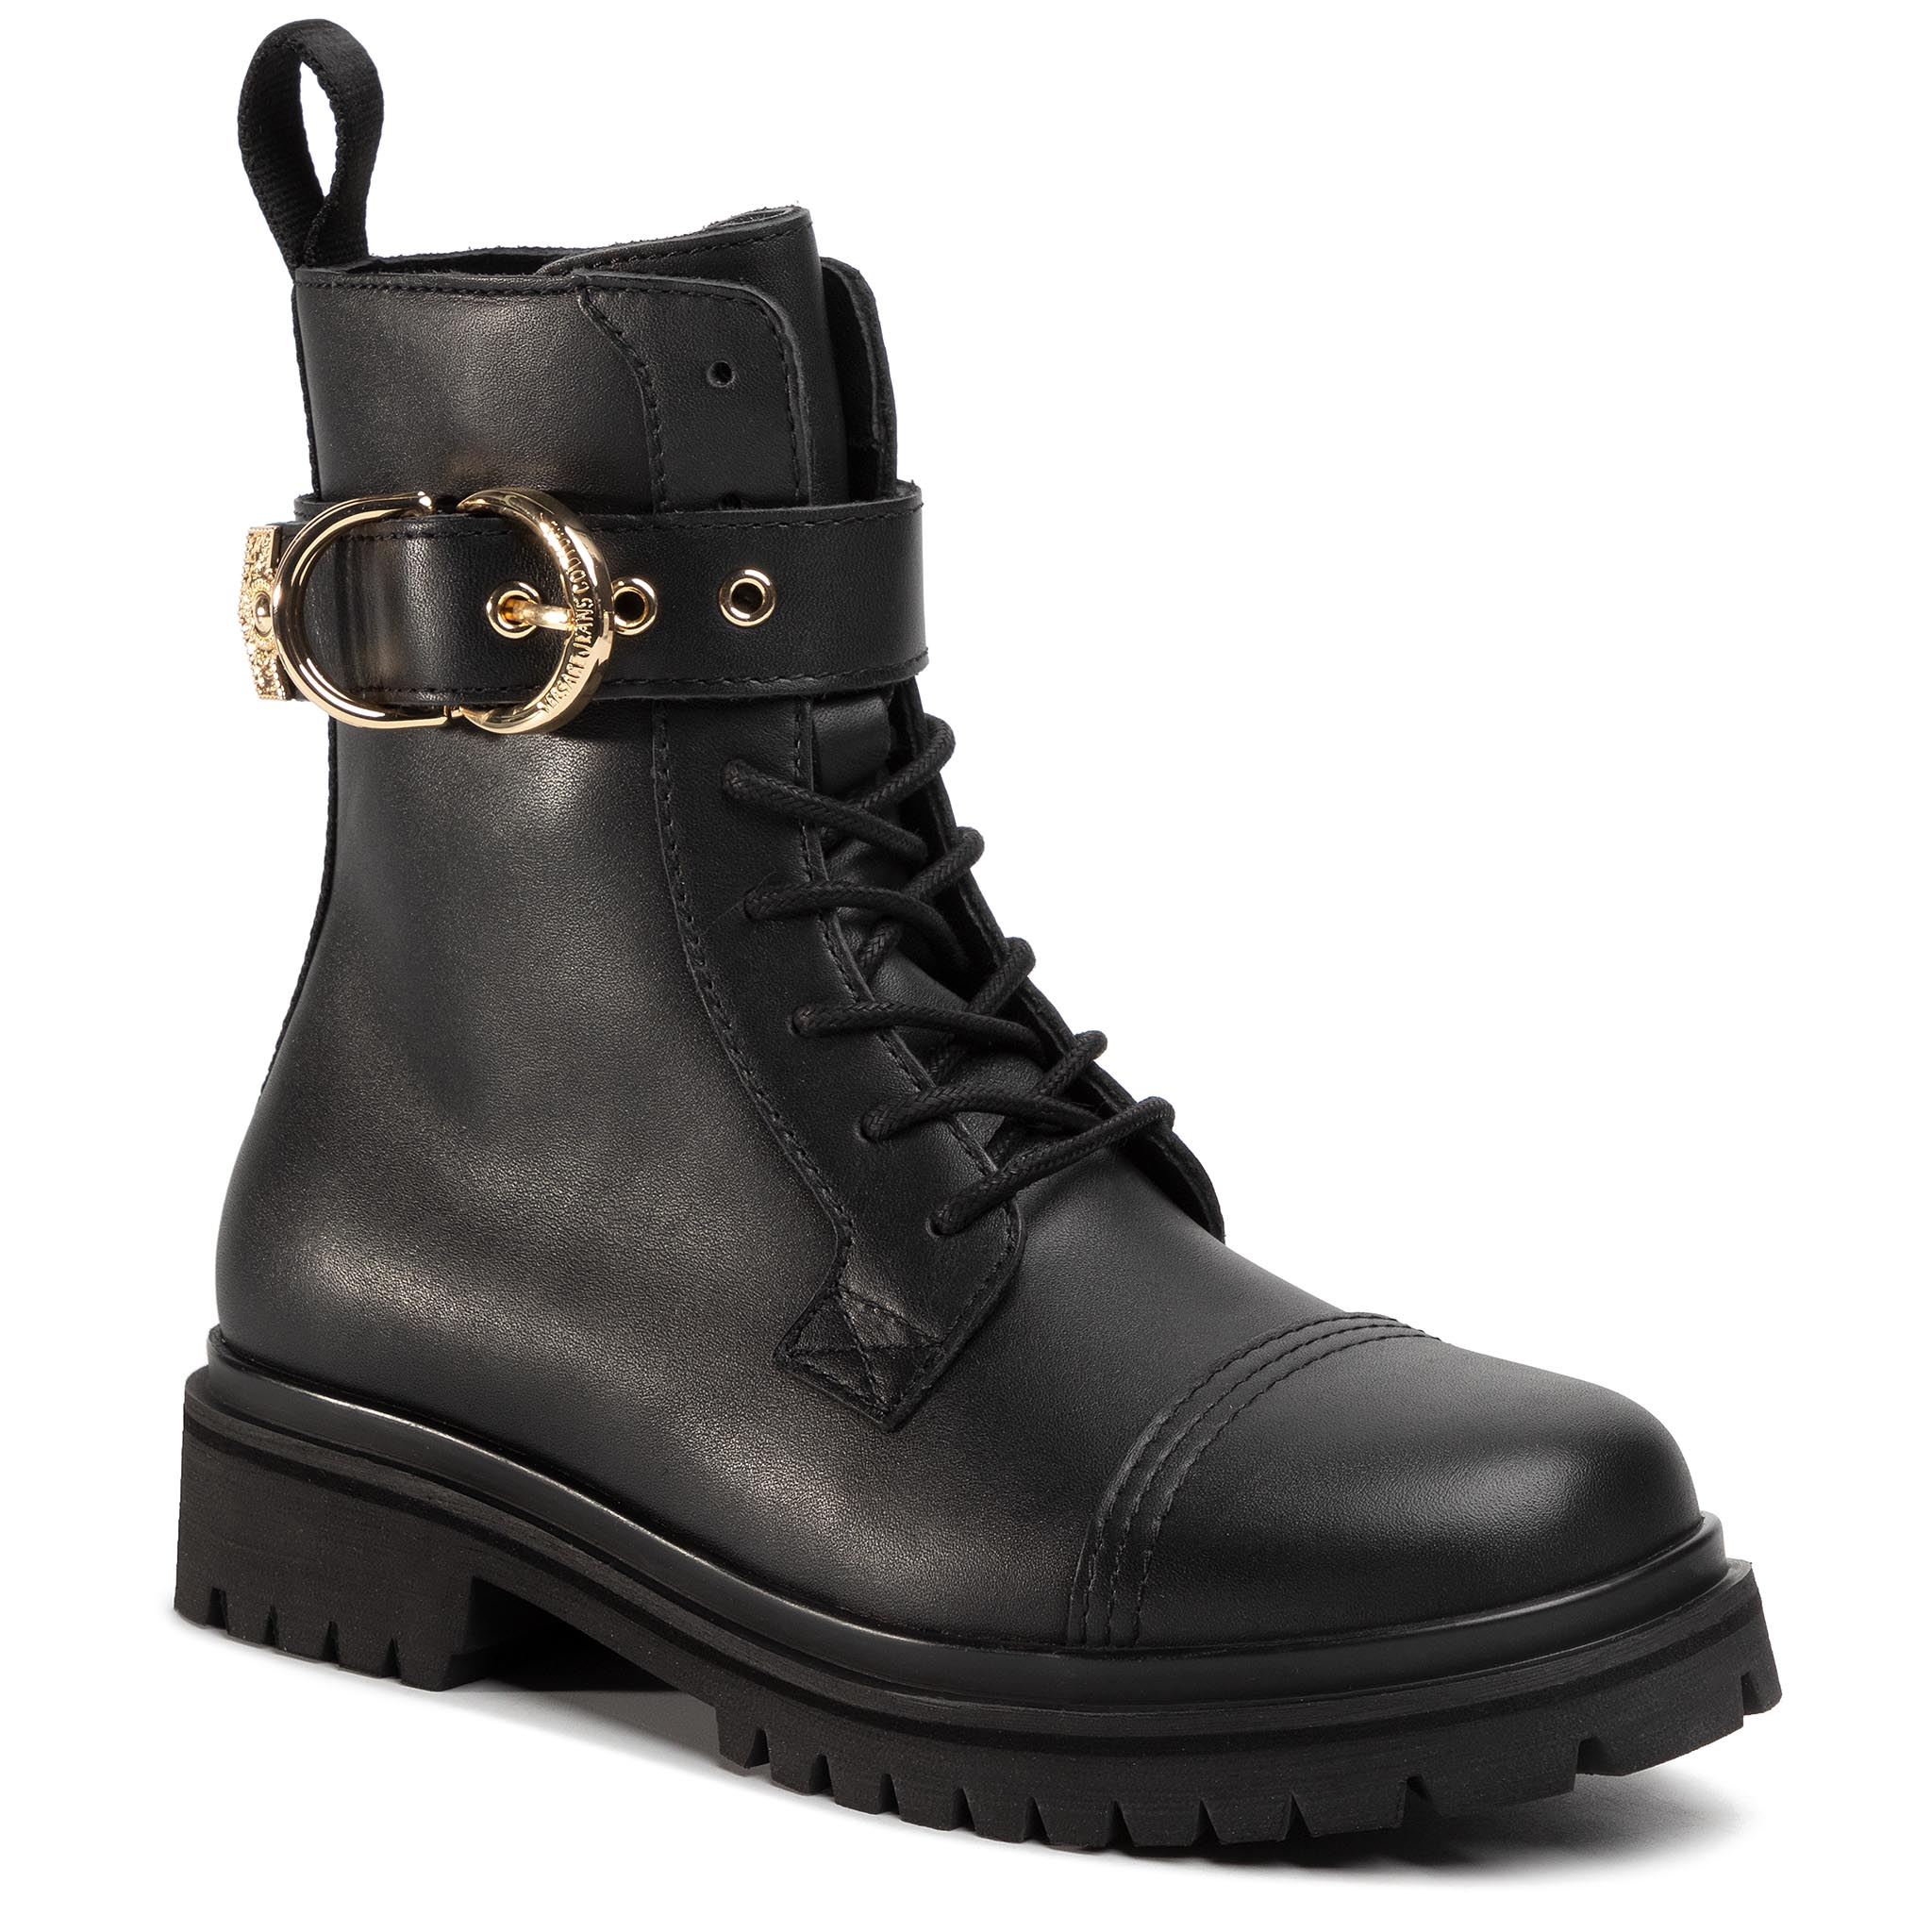 Trappers VERSACE JEANS COUTURE - E0VVBS41 71387 899